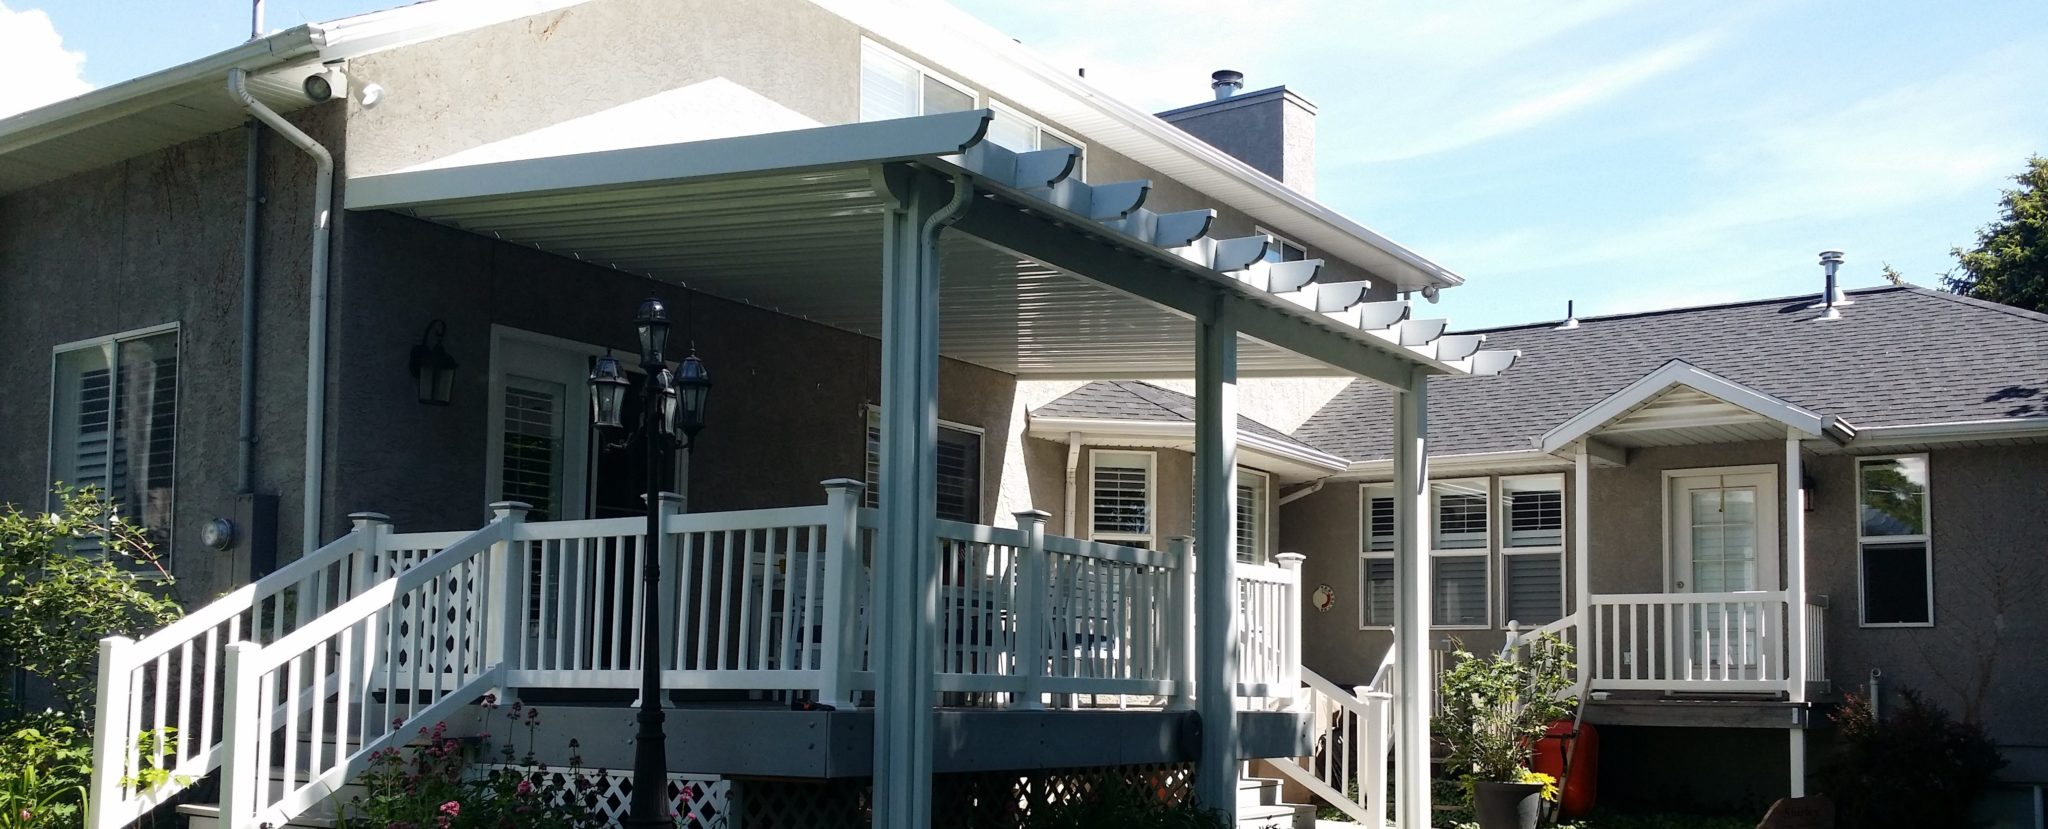 Patio Covers Amp Awnings Salt Lake City Aa Home Improvement